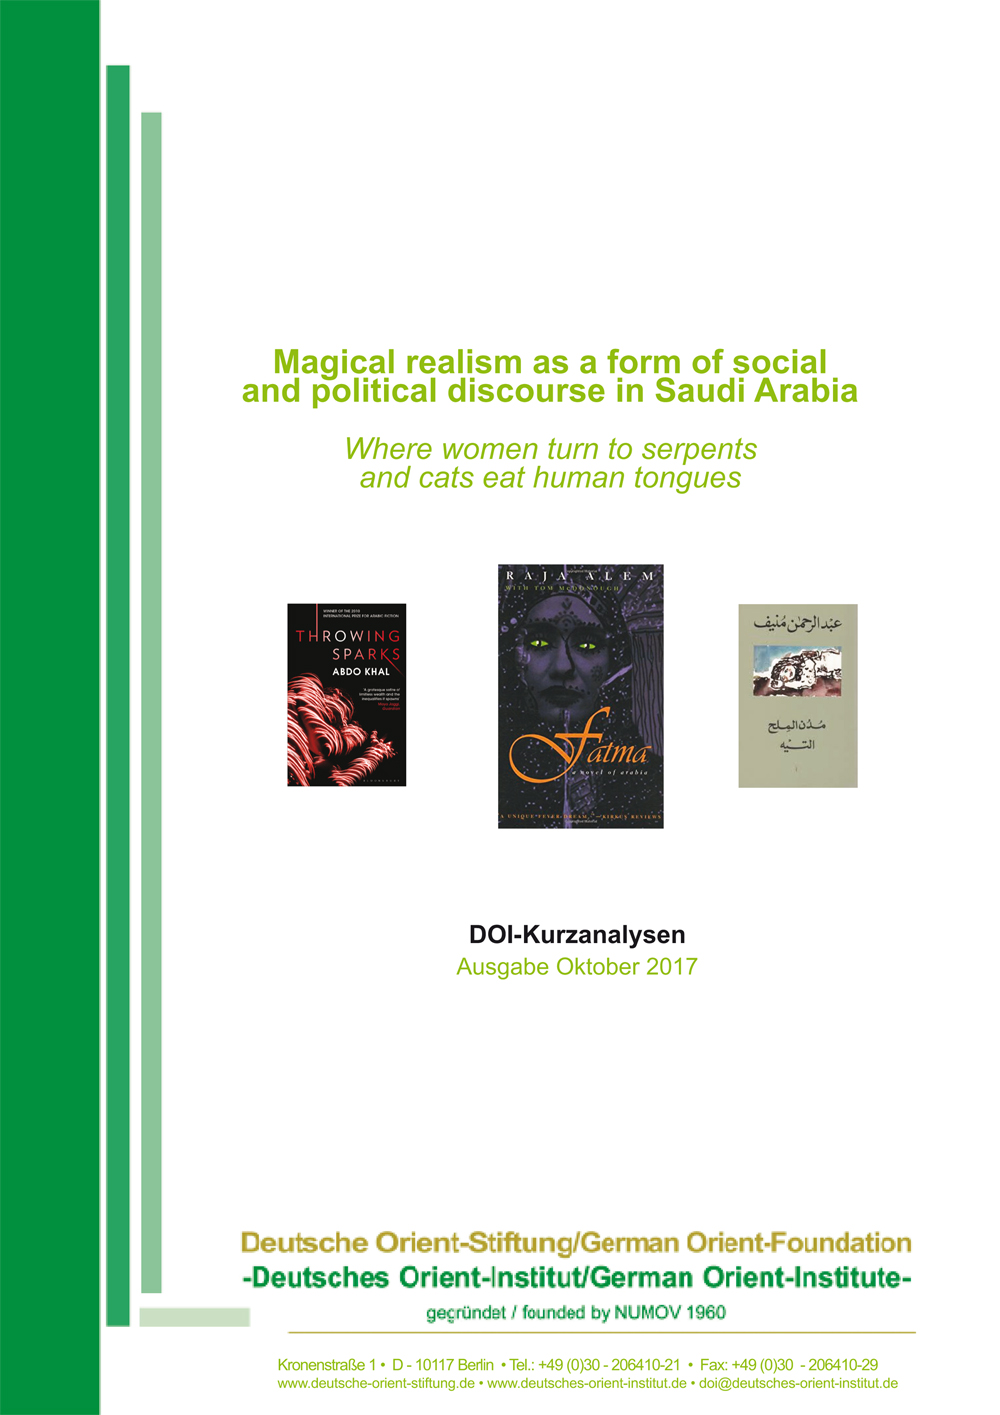 """Featured image for """"Magical realism as a form of social and political discourse in Saudi Arabia: Where women turn to serpents and cats eat human tongues"""""""